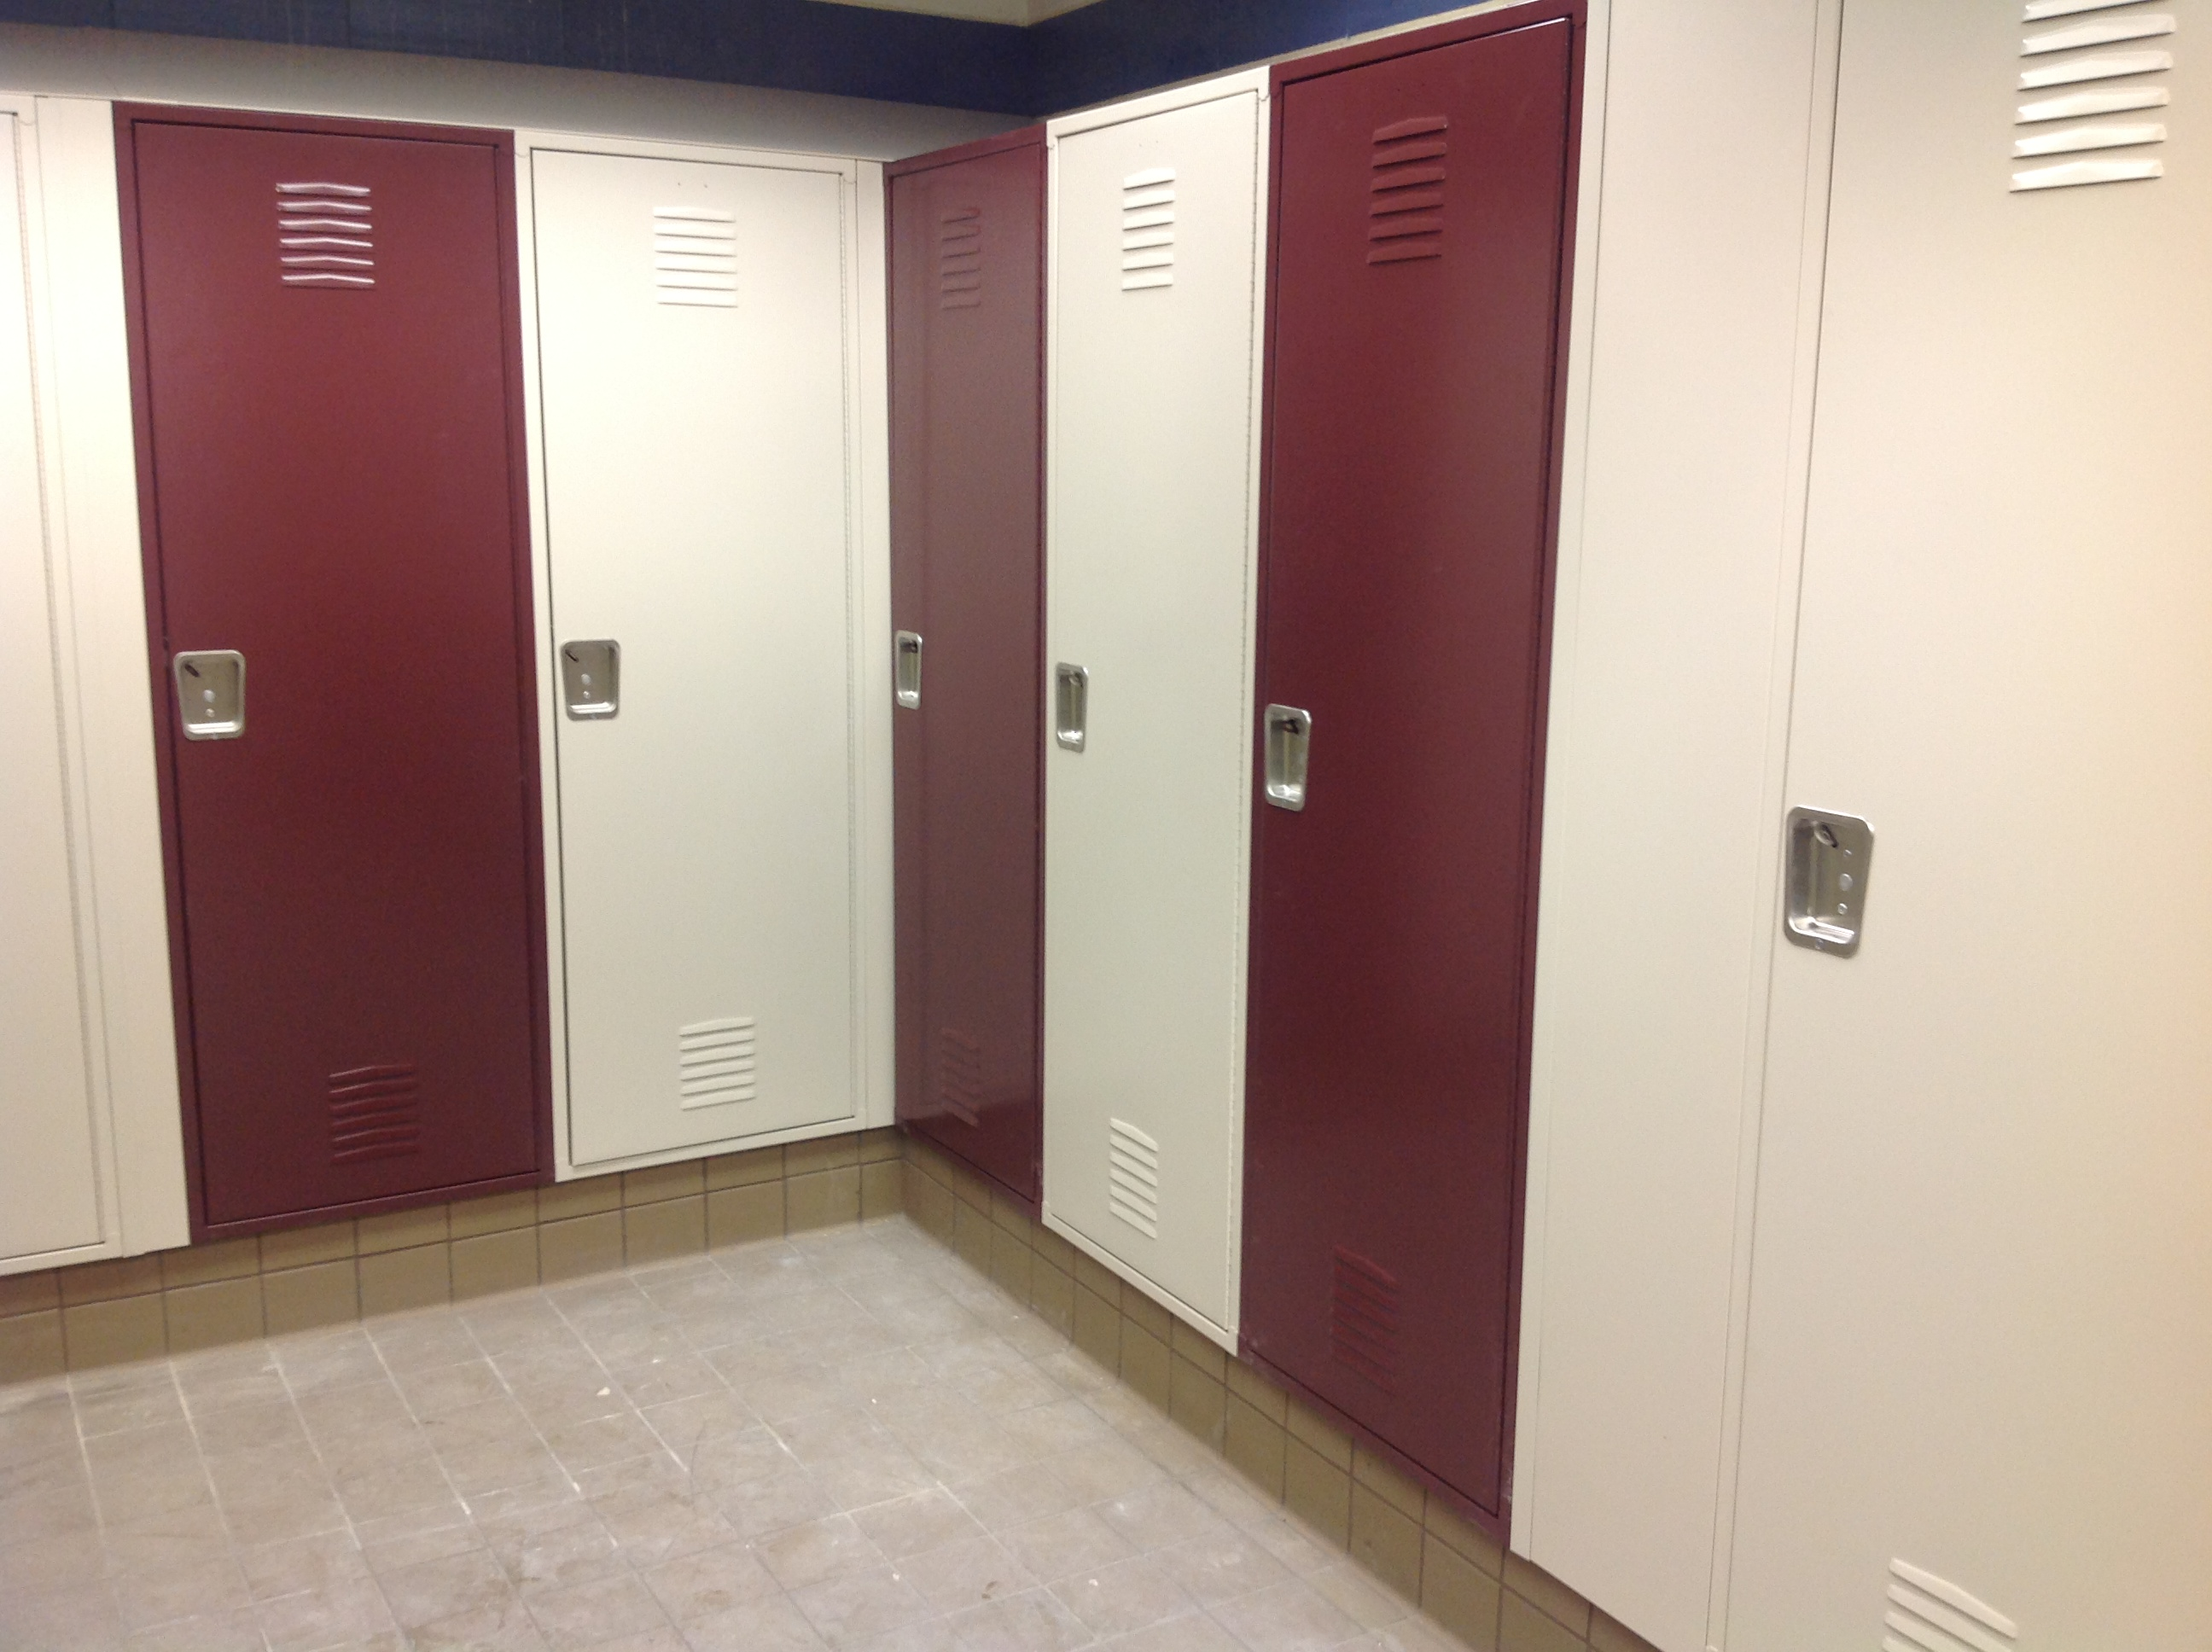 Brilliant Penco Lockers for Best Locker Choice: Double Tier Metal Lockers | Penco Vanguard Lockers | Penco Lockers